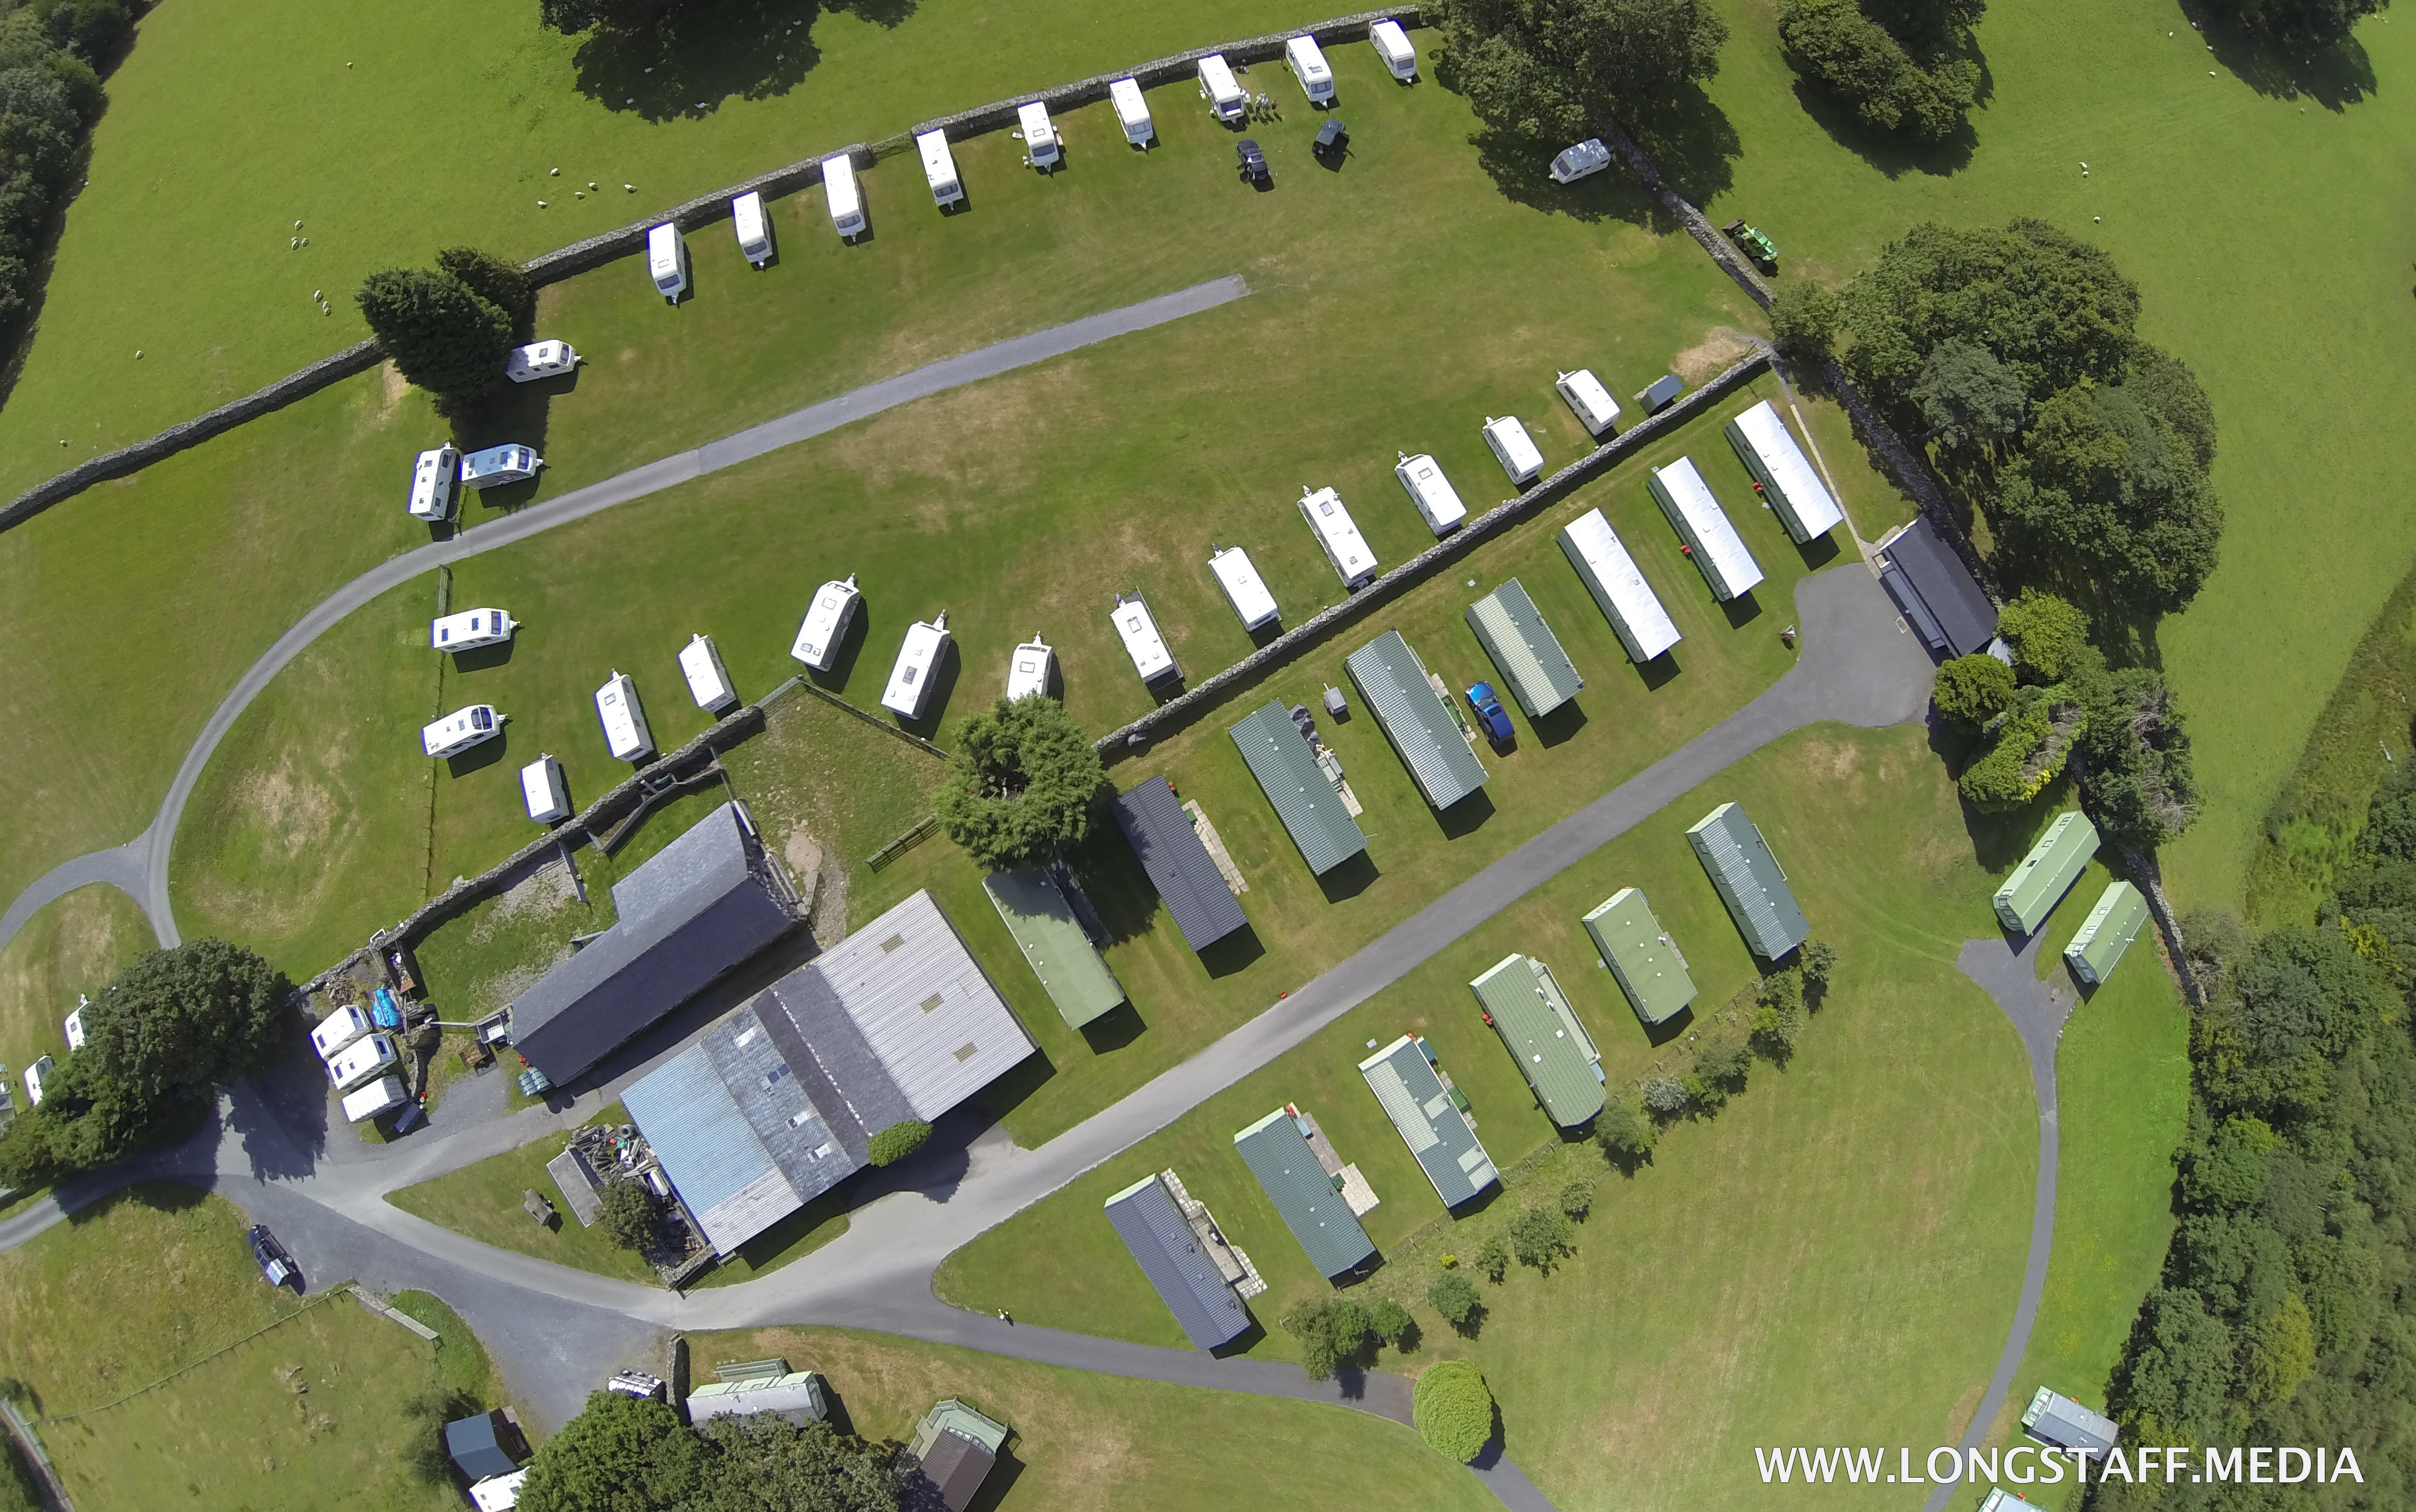 Camp-site-drone-photograph-North-Wales.JPG#asset:473